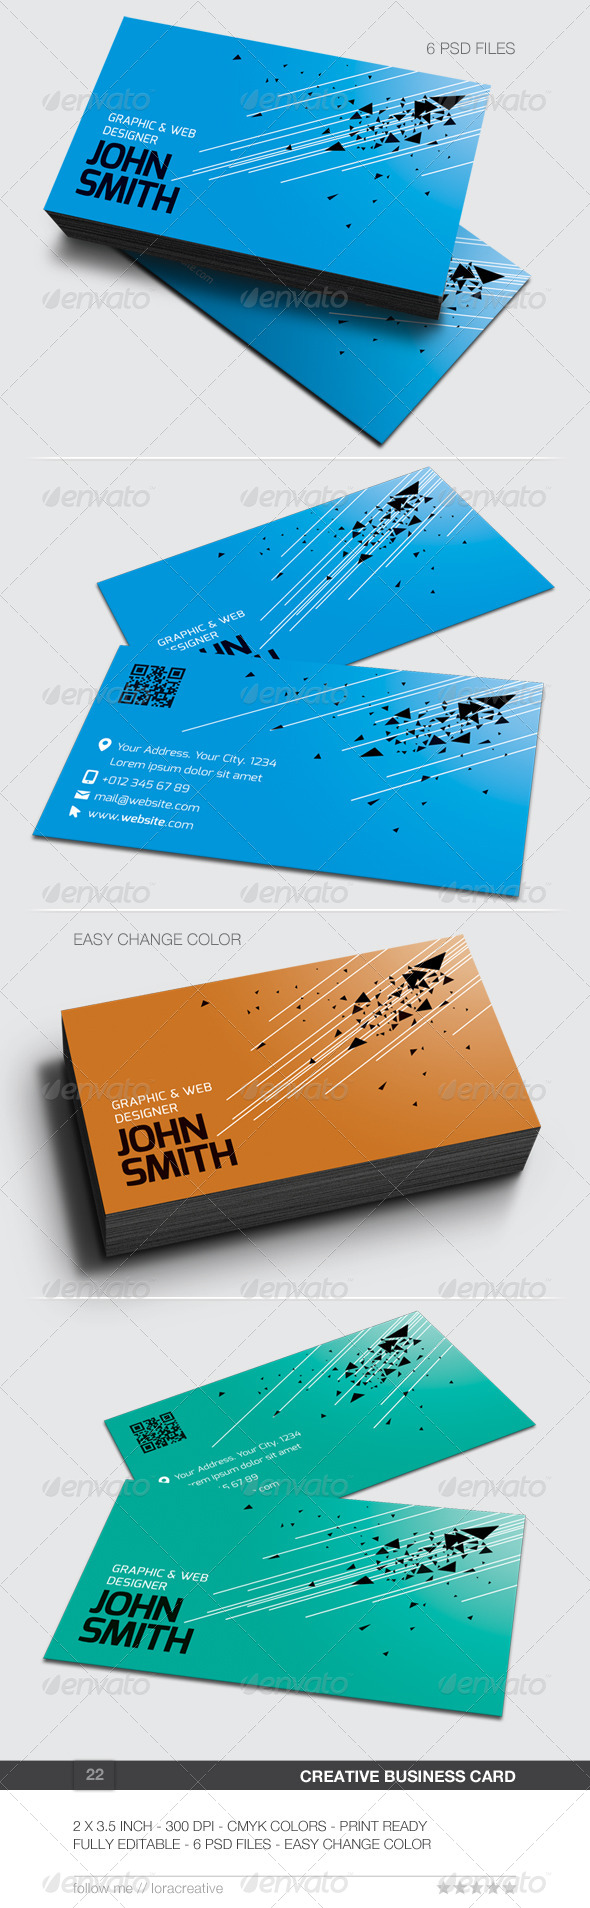 GraphicRiver Creative Business Card 22 6491341